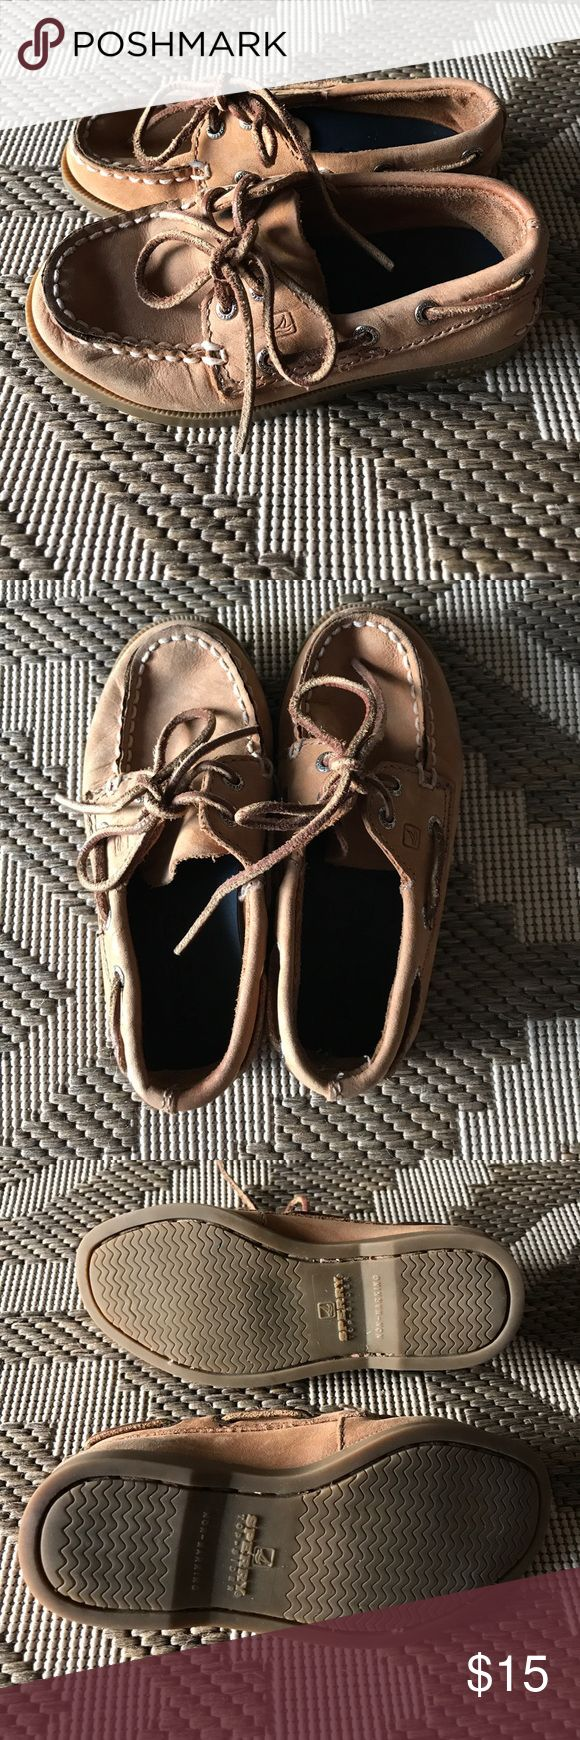 Toddler boys Sperrys! Gently used tan Sperry loafers. Don't pay full price when your kid will only wear them for one season! Sperry Shoes Moccasins